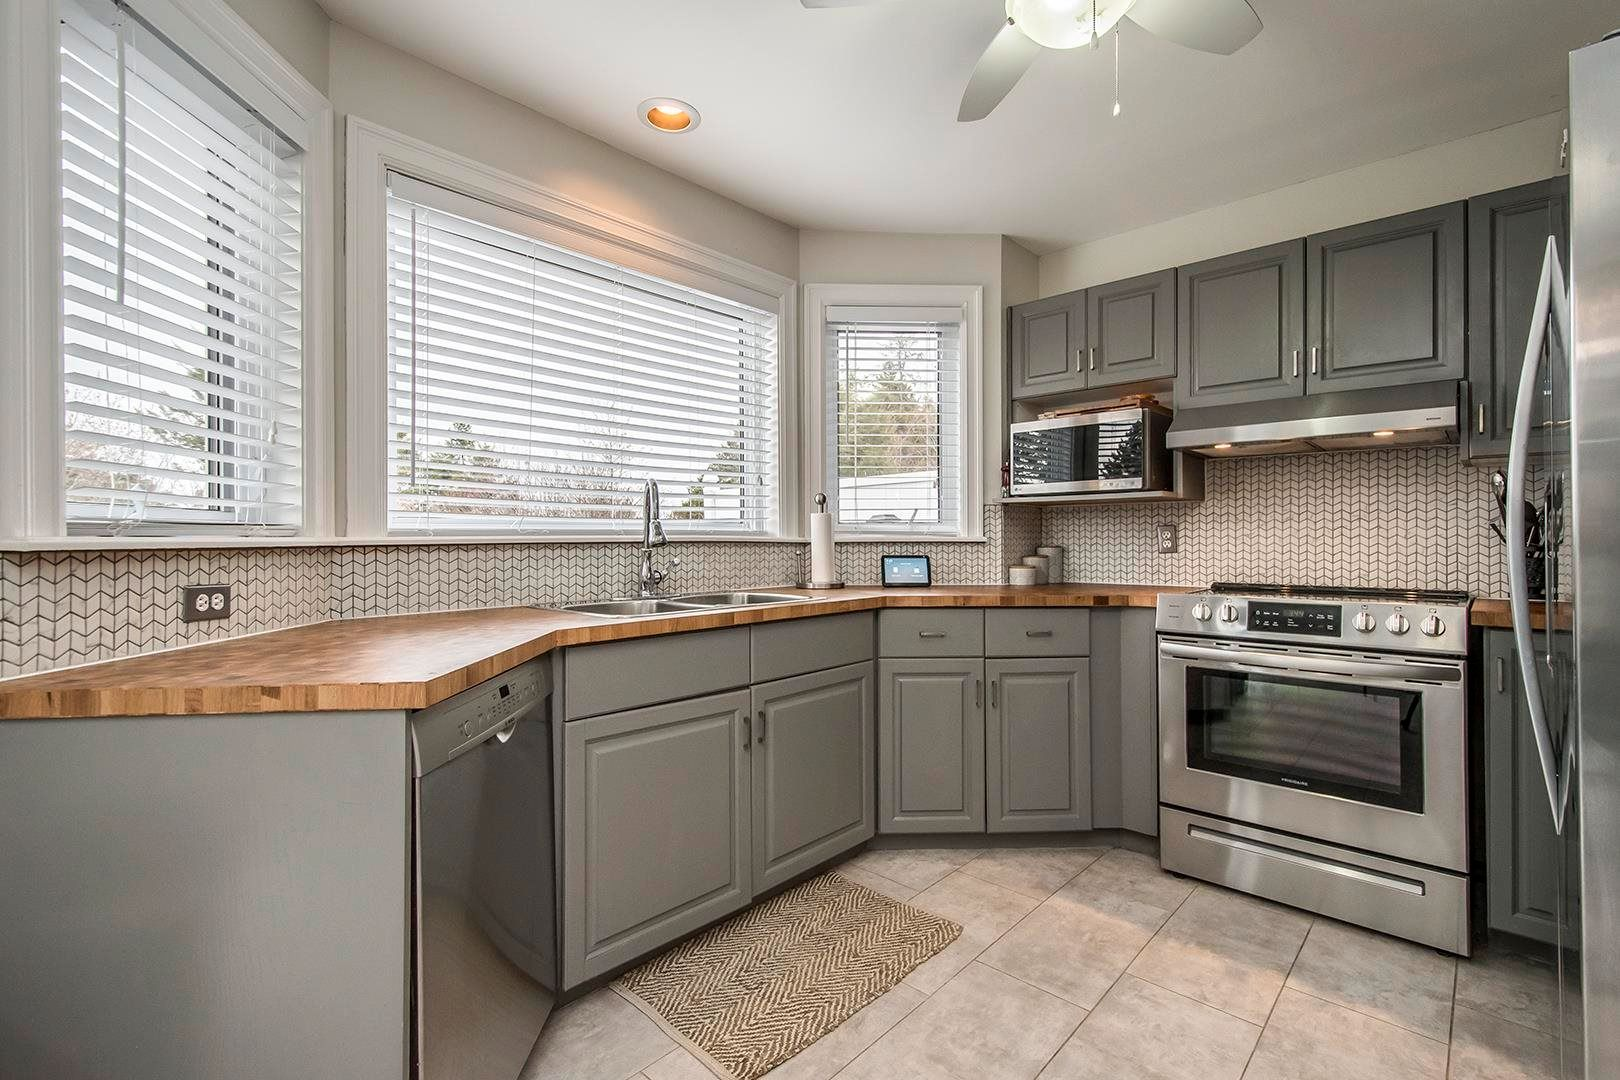 Photo 10: Photos: 64 Roy Crescent in Bedford: 20-Bedford Residential for sale (Halifax-Dartmouth)  : MLS®# 202110846